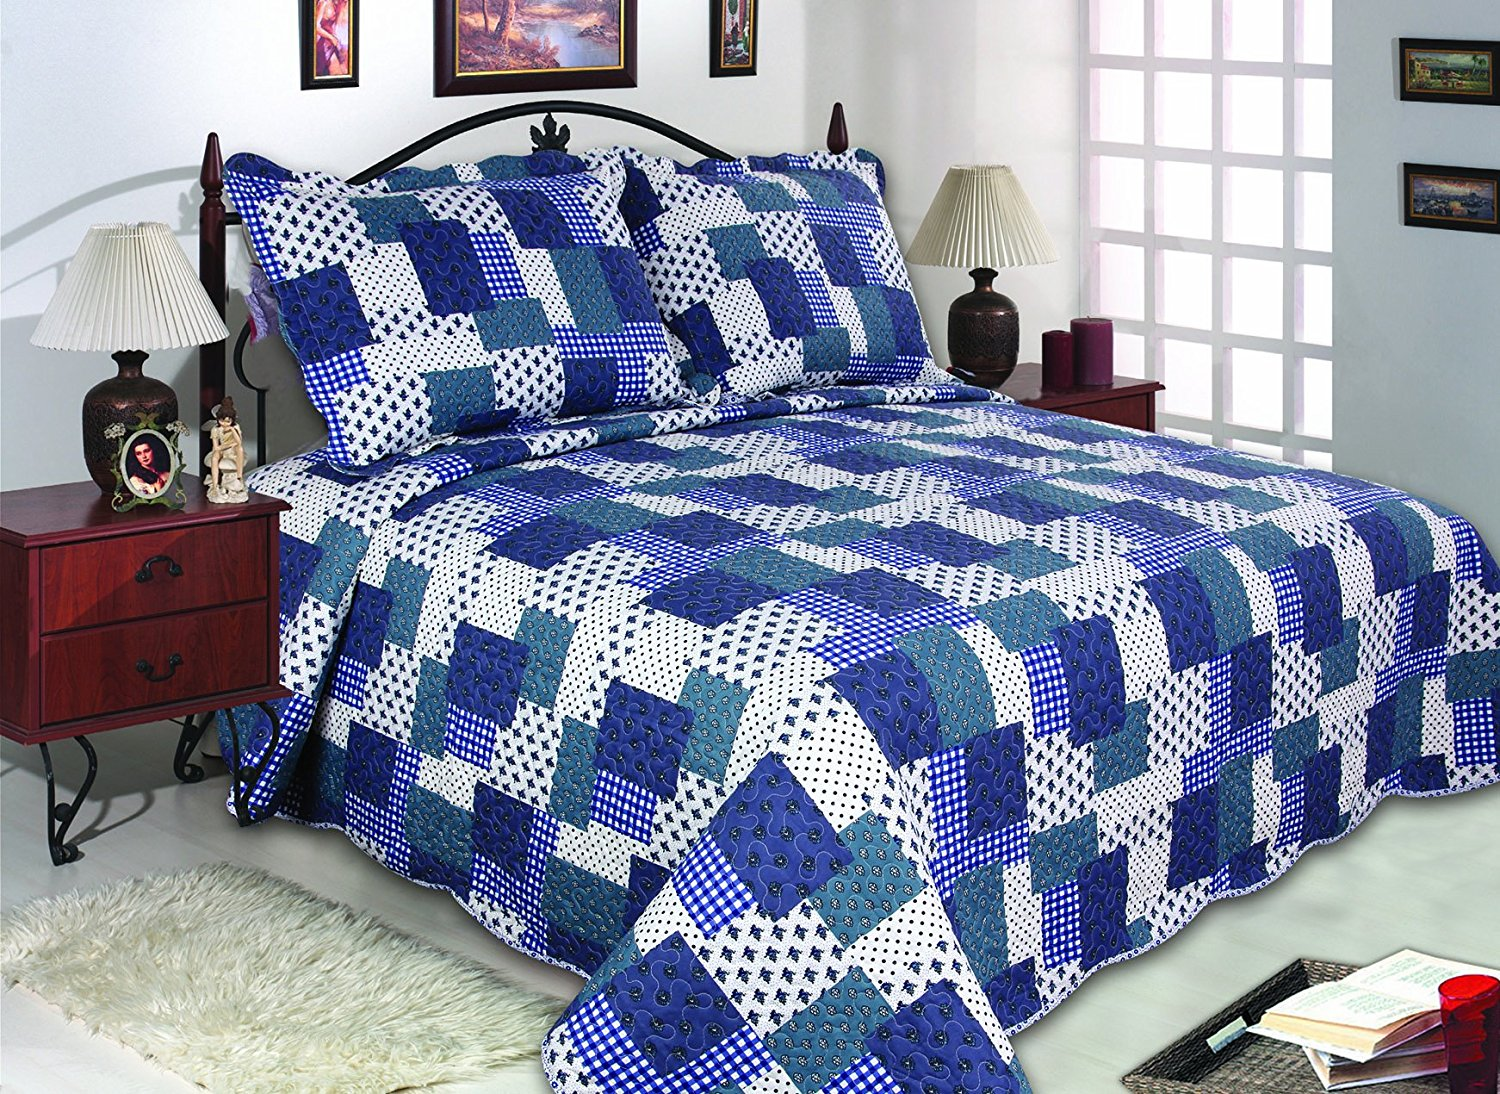 All for You 3pc Reversible Quilt Set, Bedspread, and Coverlet with Flower Prints-3... by All For You Home